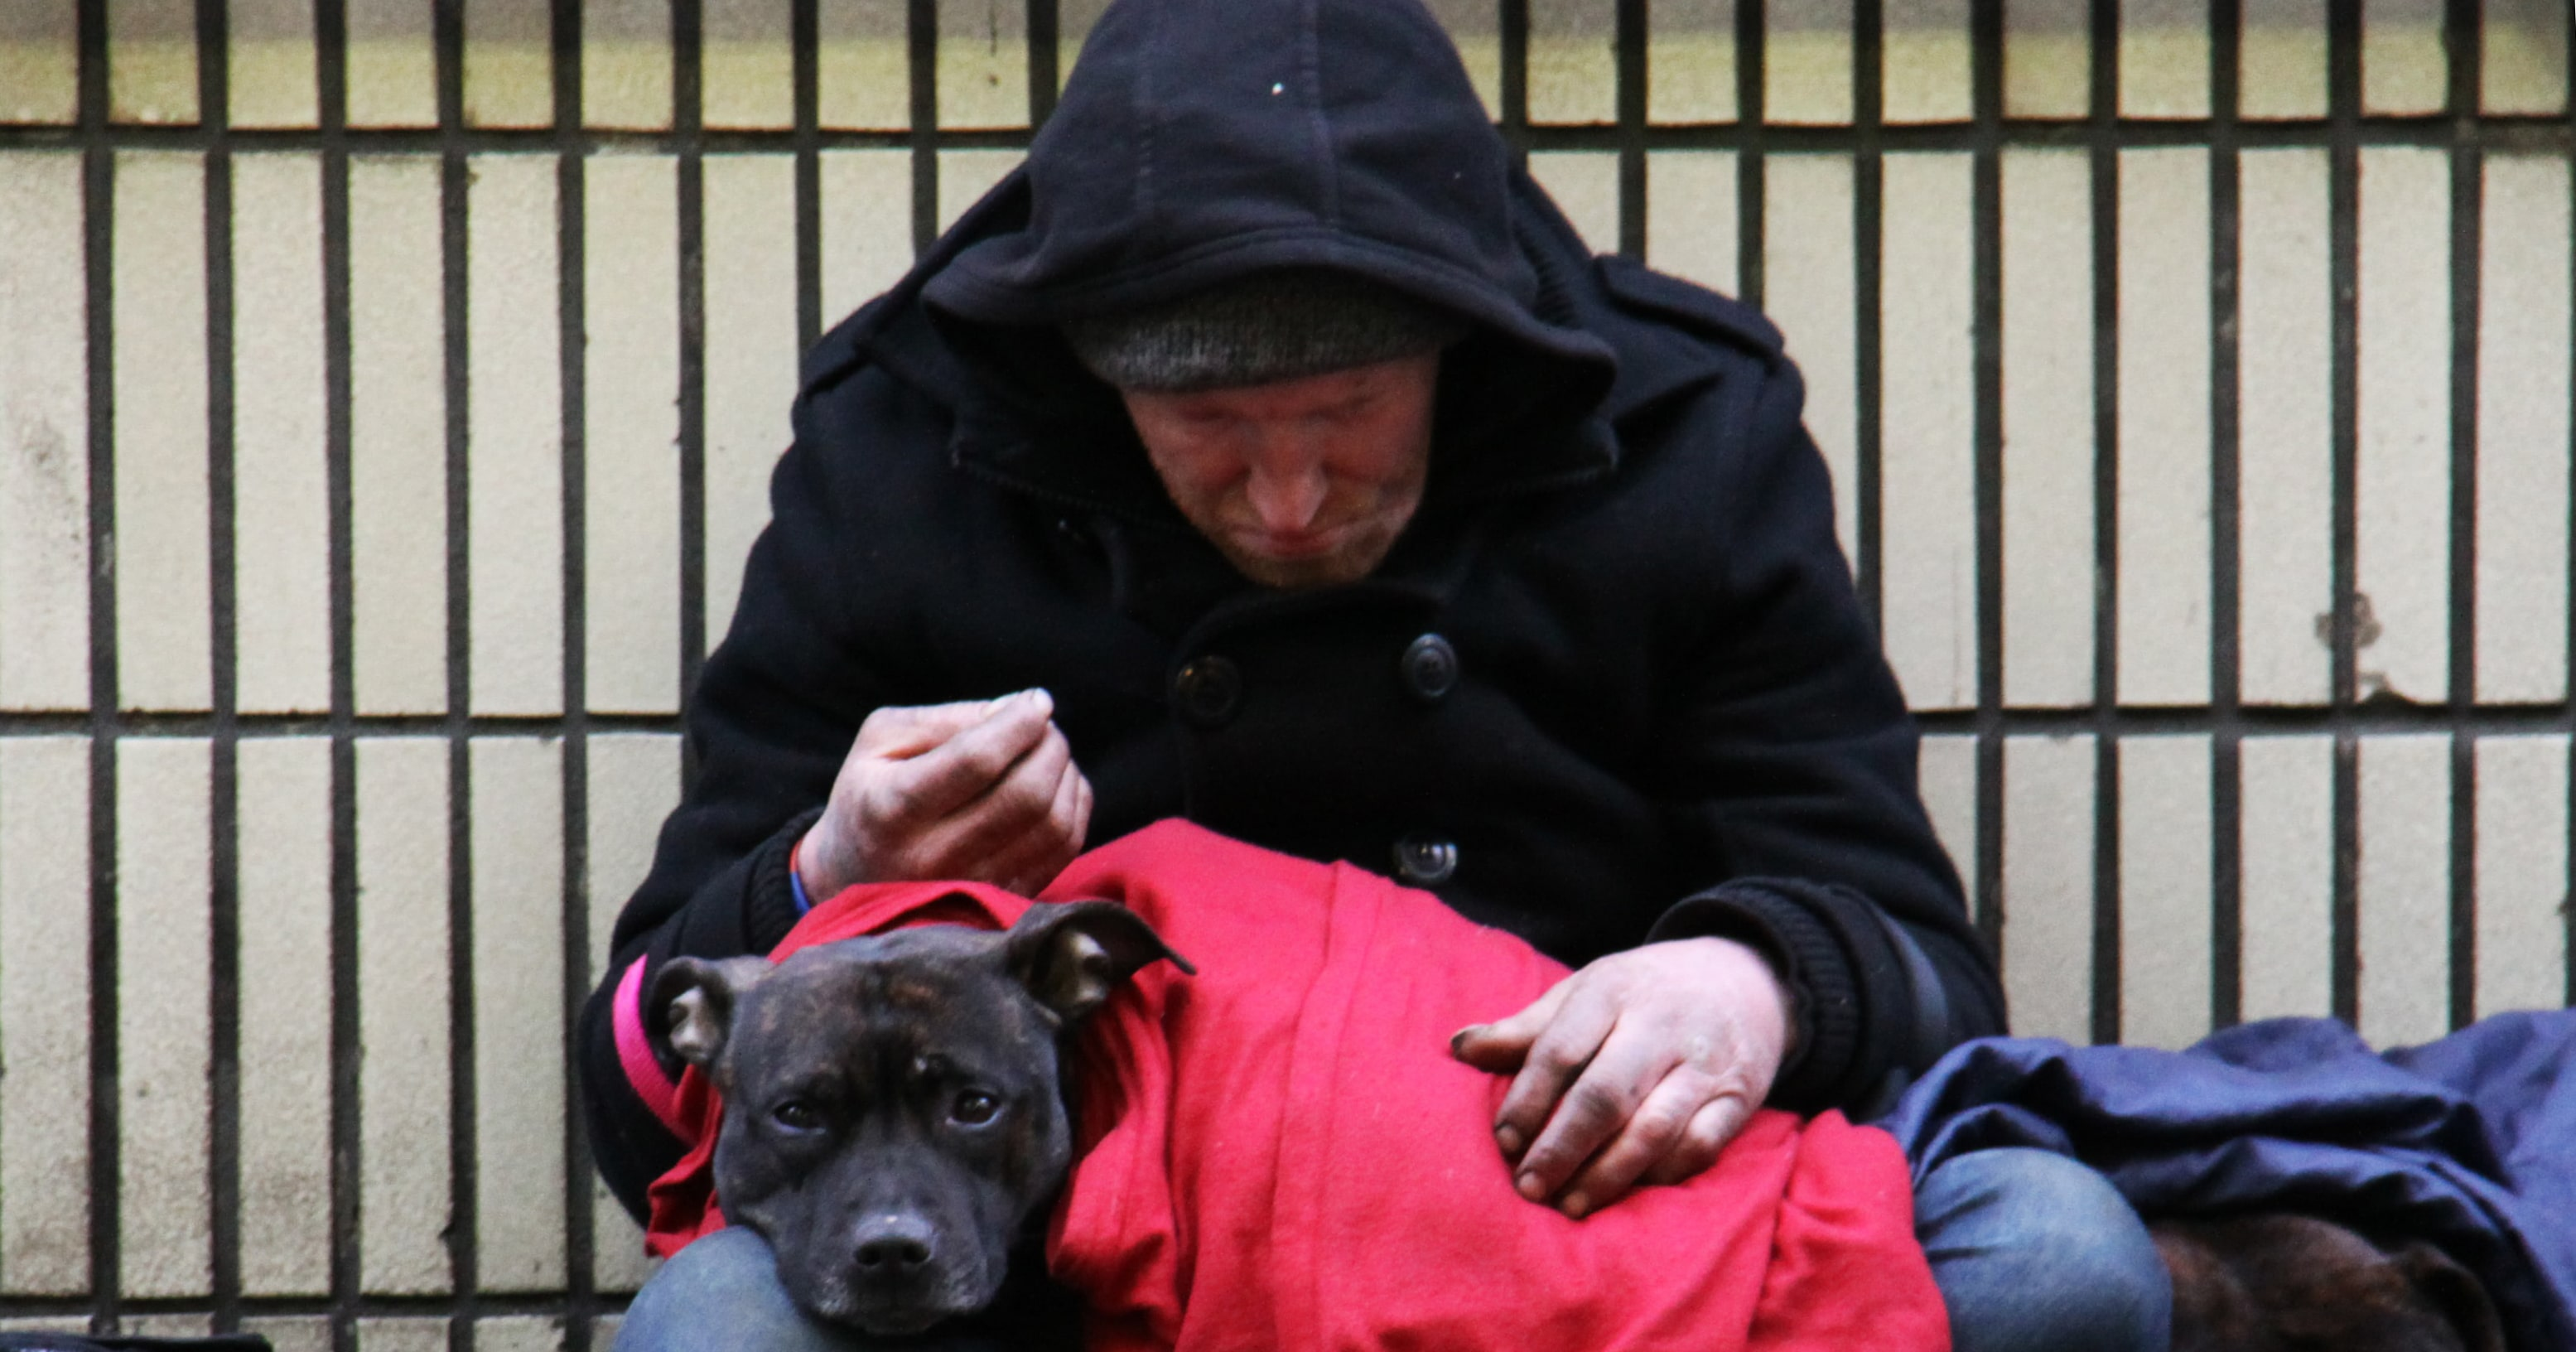 Depressed Homeless Man in black, hooded, jacked with black dog in red blanket laying.